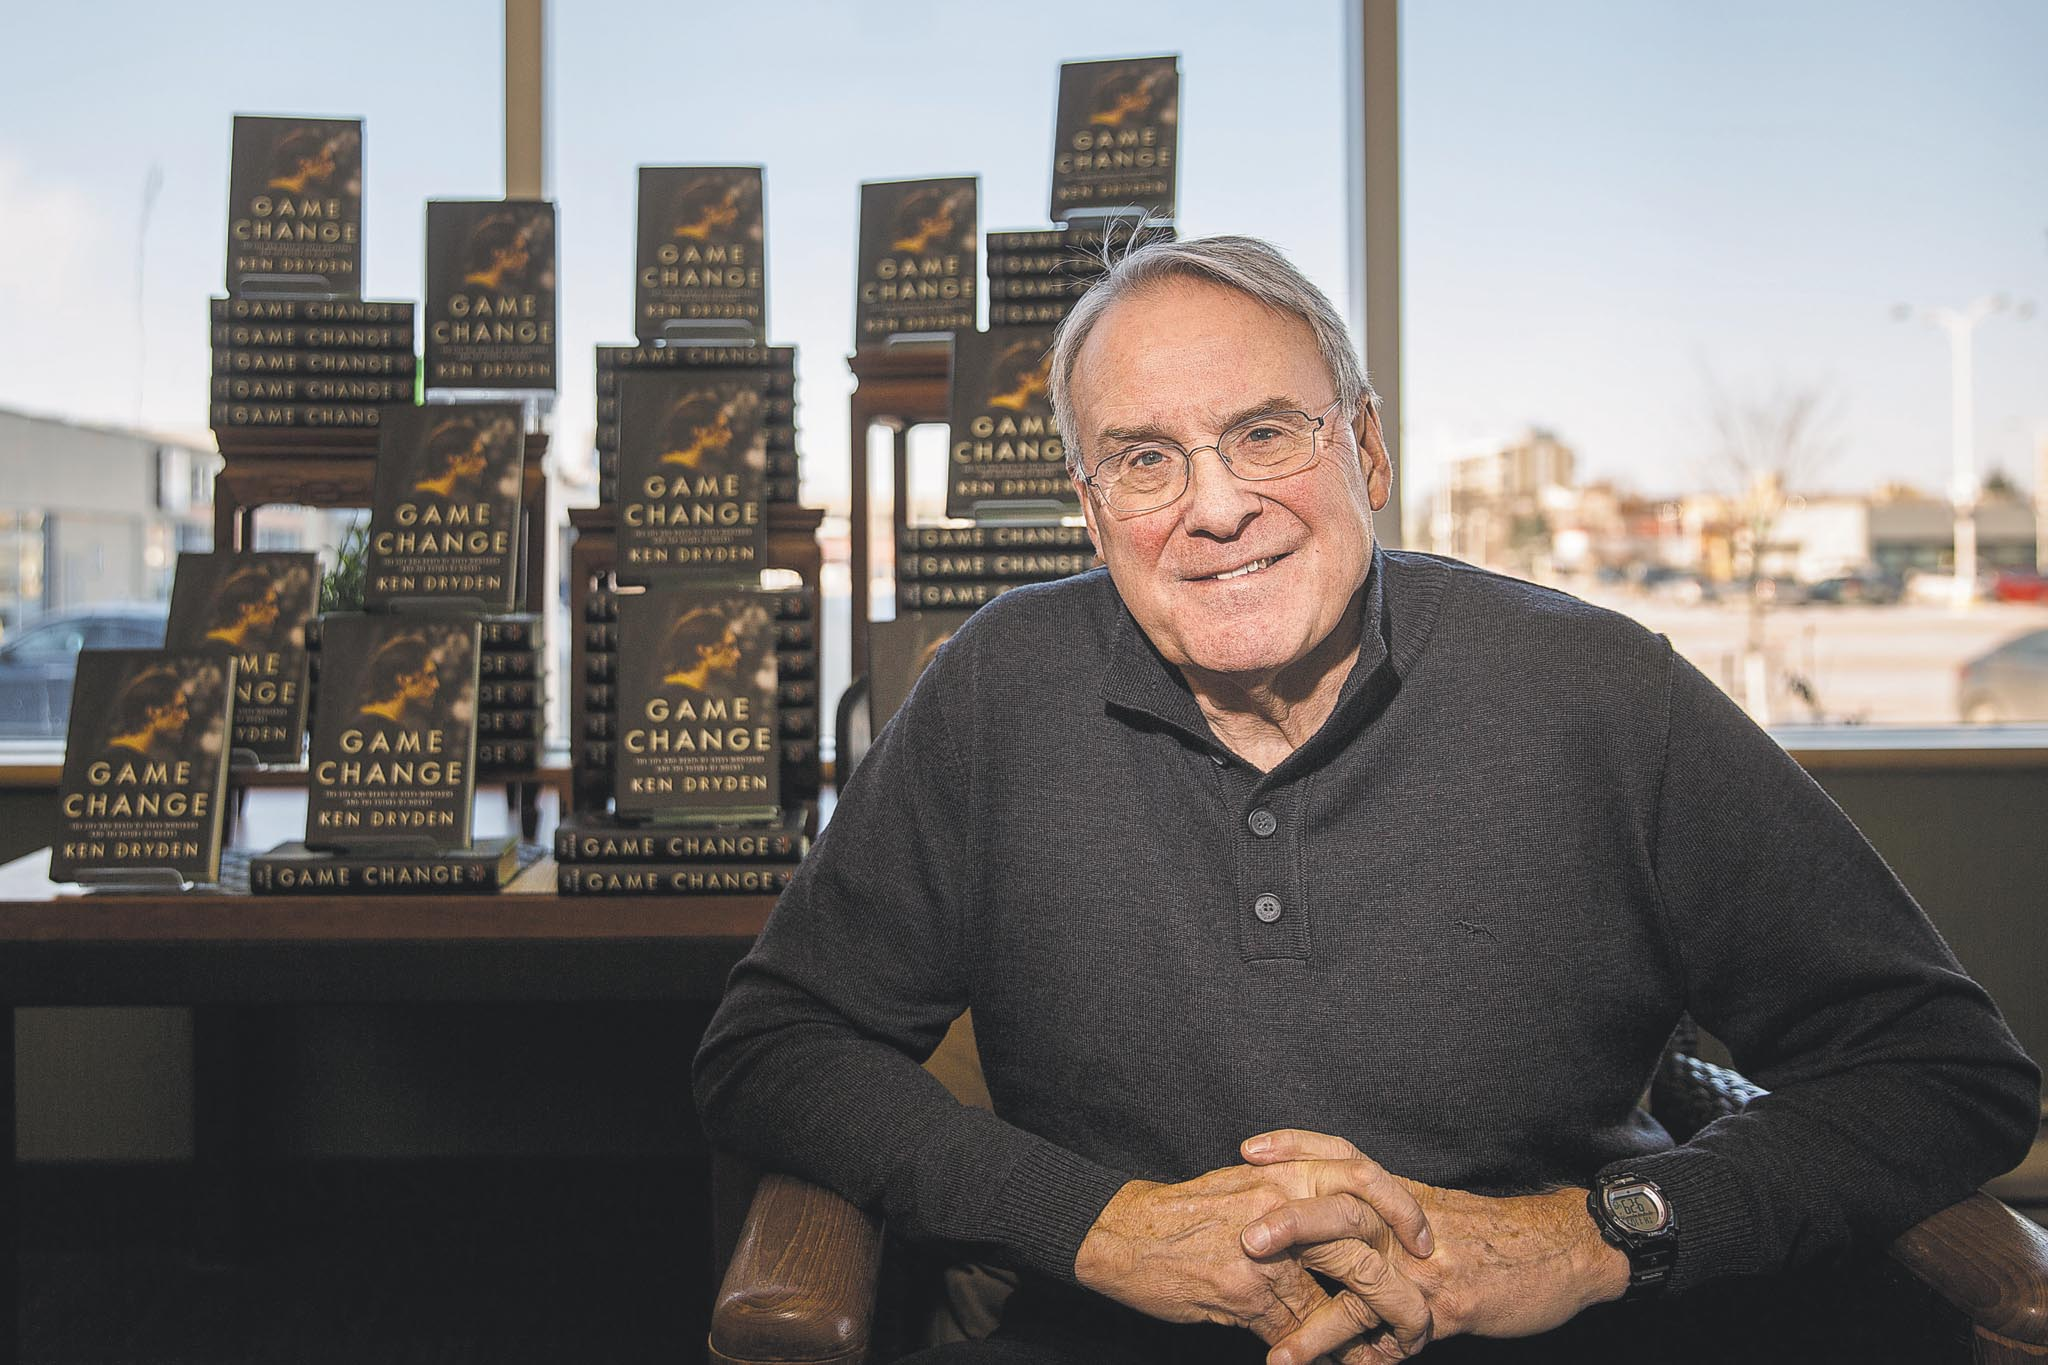 Ken Dryden achieved success and fame in multiple career endeavours — as a hockey player, a member of Parliament and an author — but insists he's never worked a day in his life.